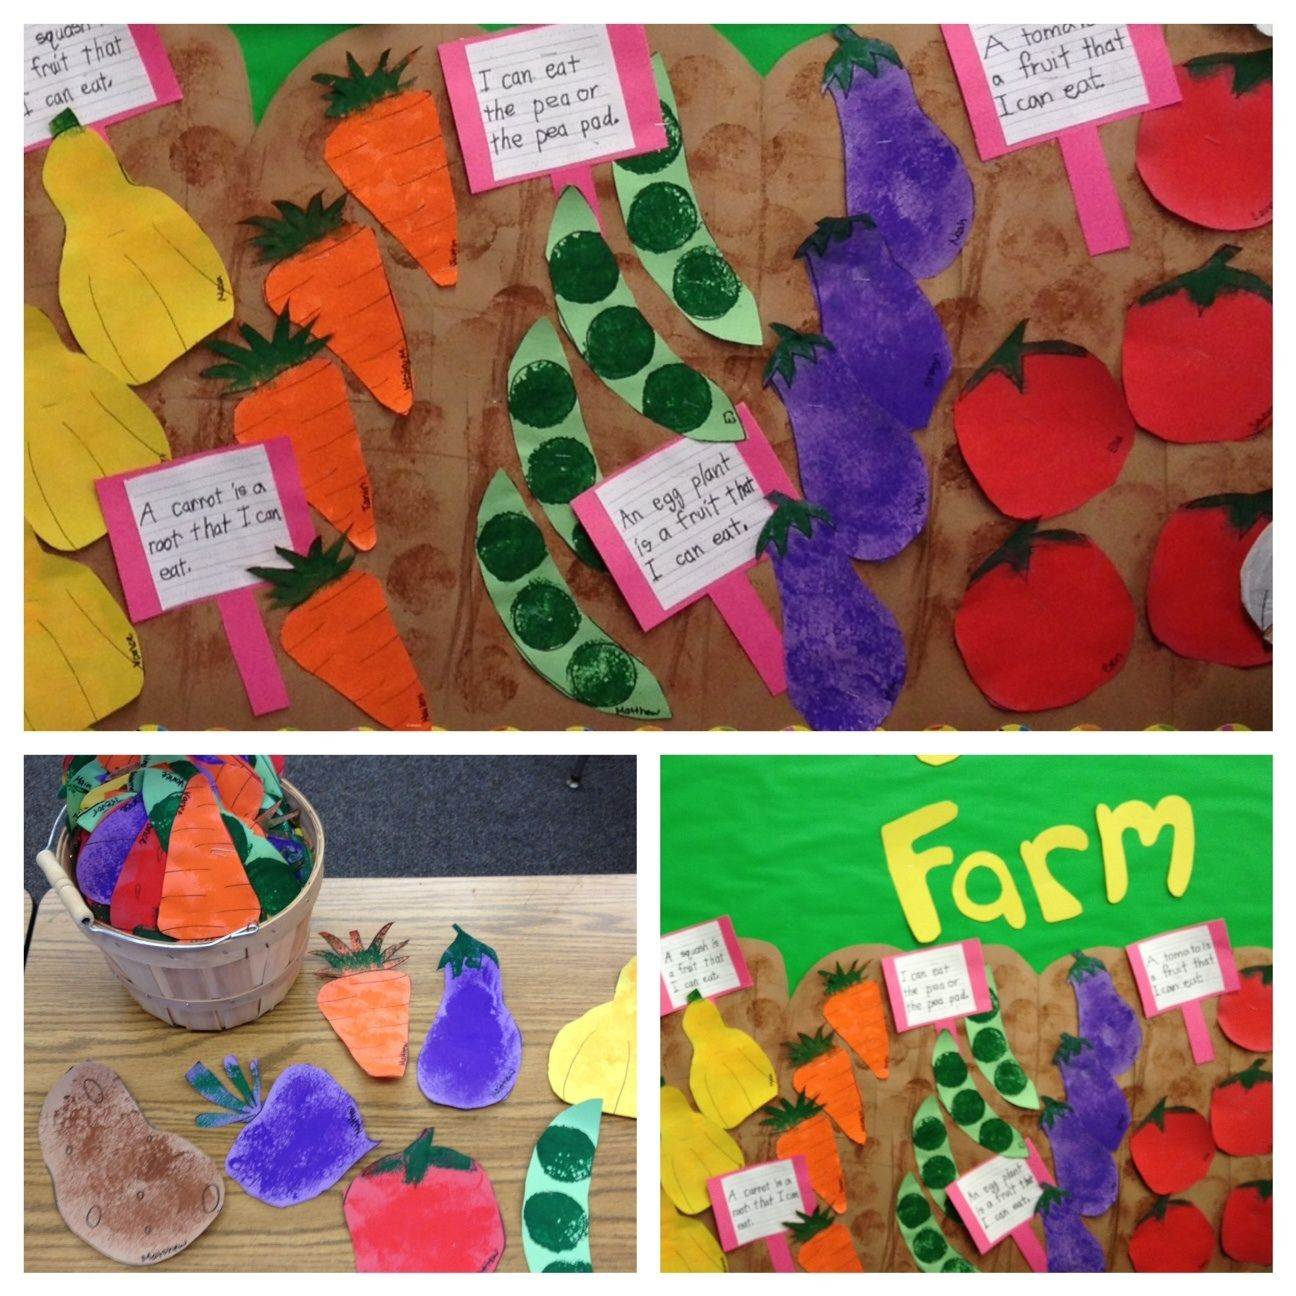 Ooooh Cute Veggies For The Farmer S Garden Add A Bushel Basket And A Few Canning Jars And It